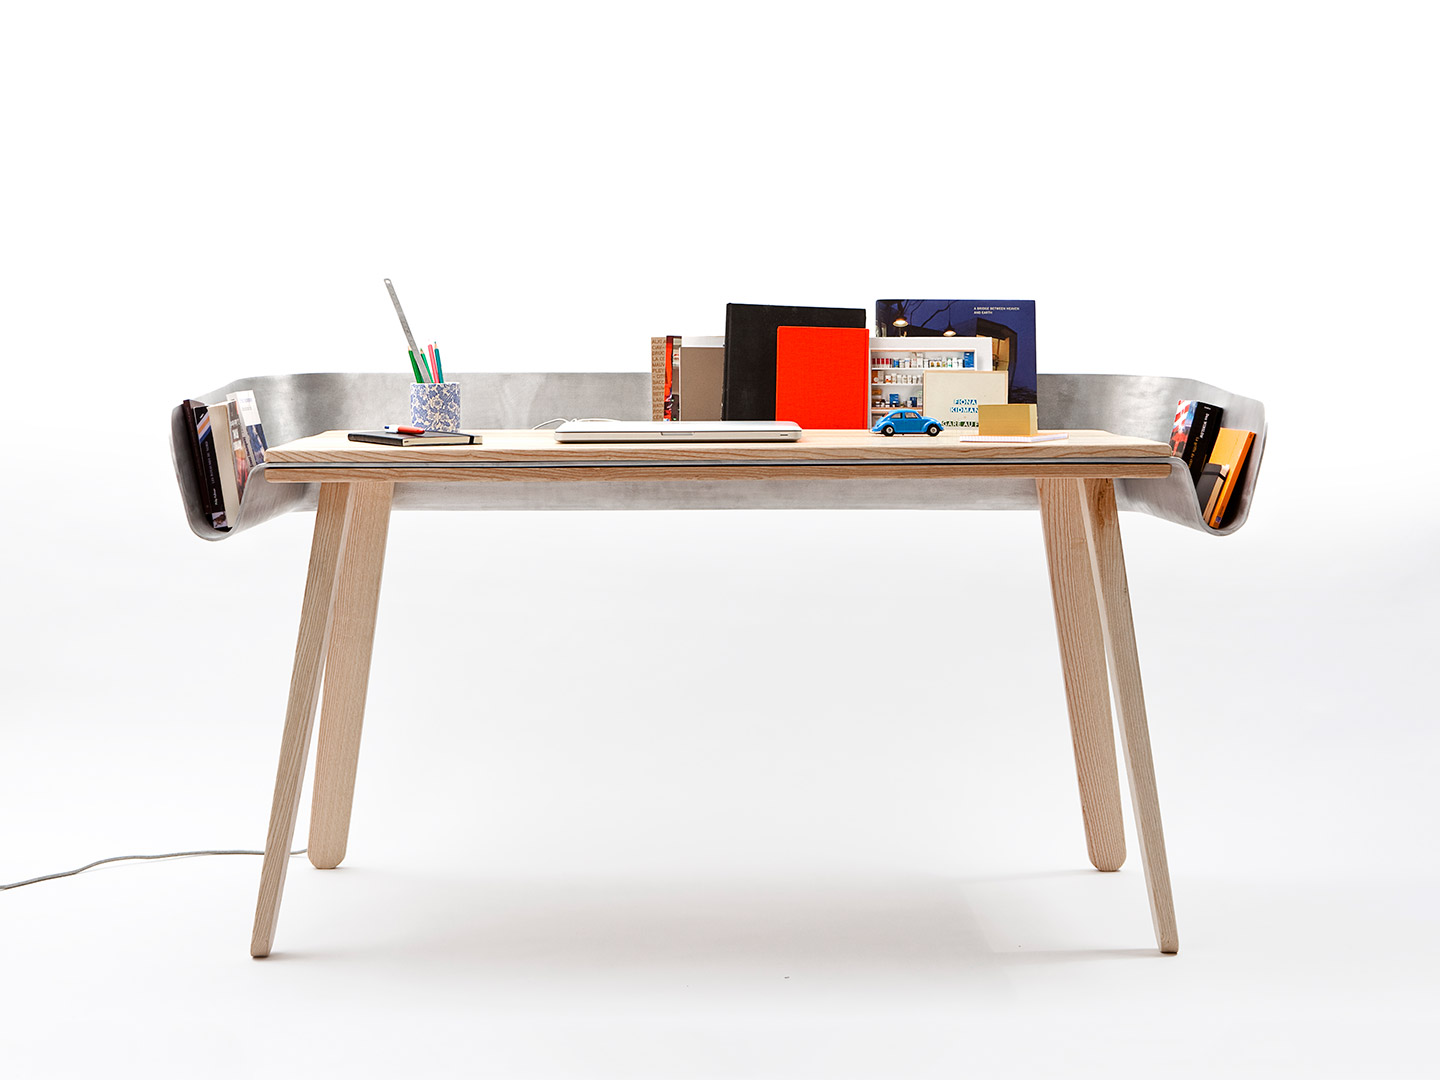 Table bureau design beautiful des ides de bureau dont cette superbe table de - Bureau design vintage ...